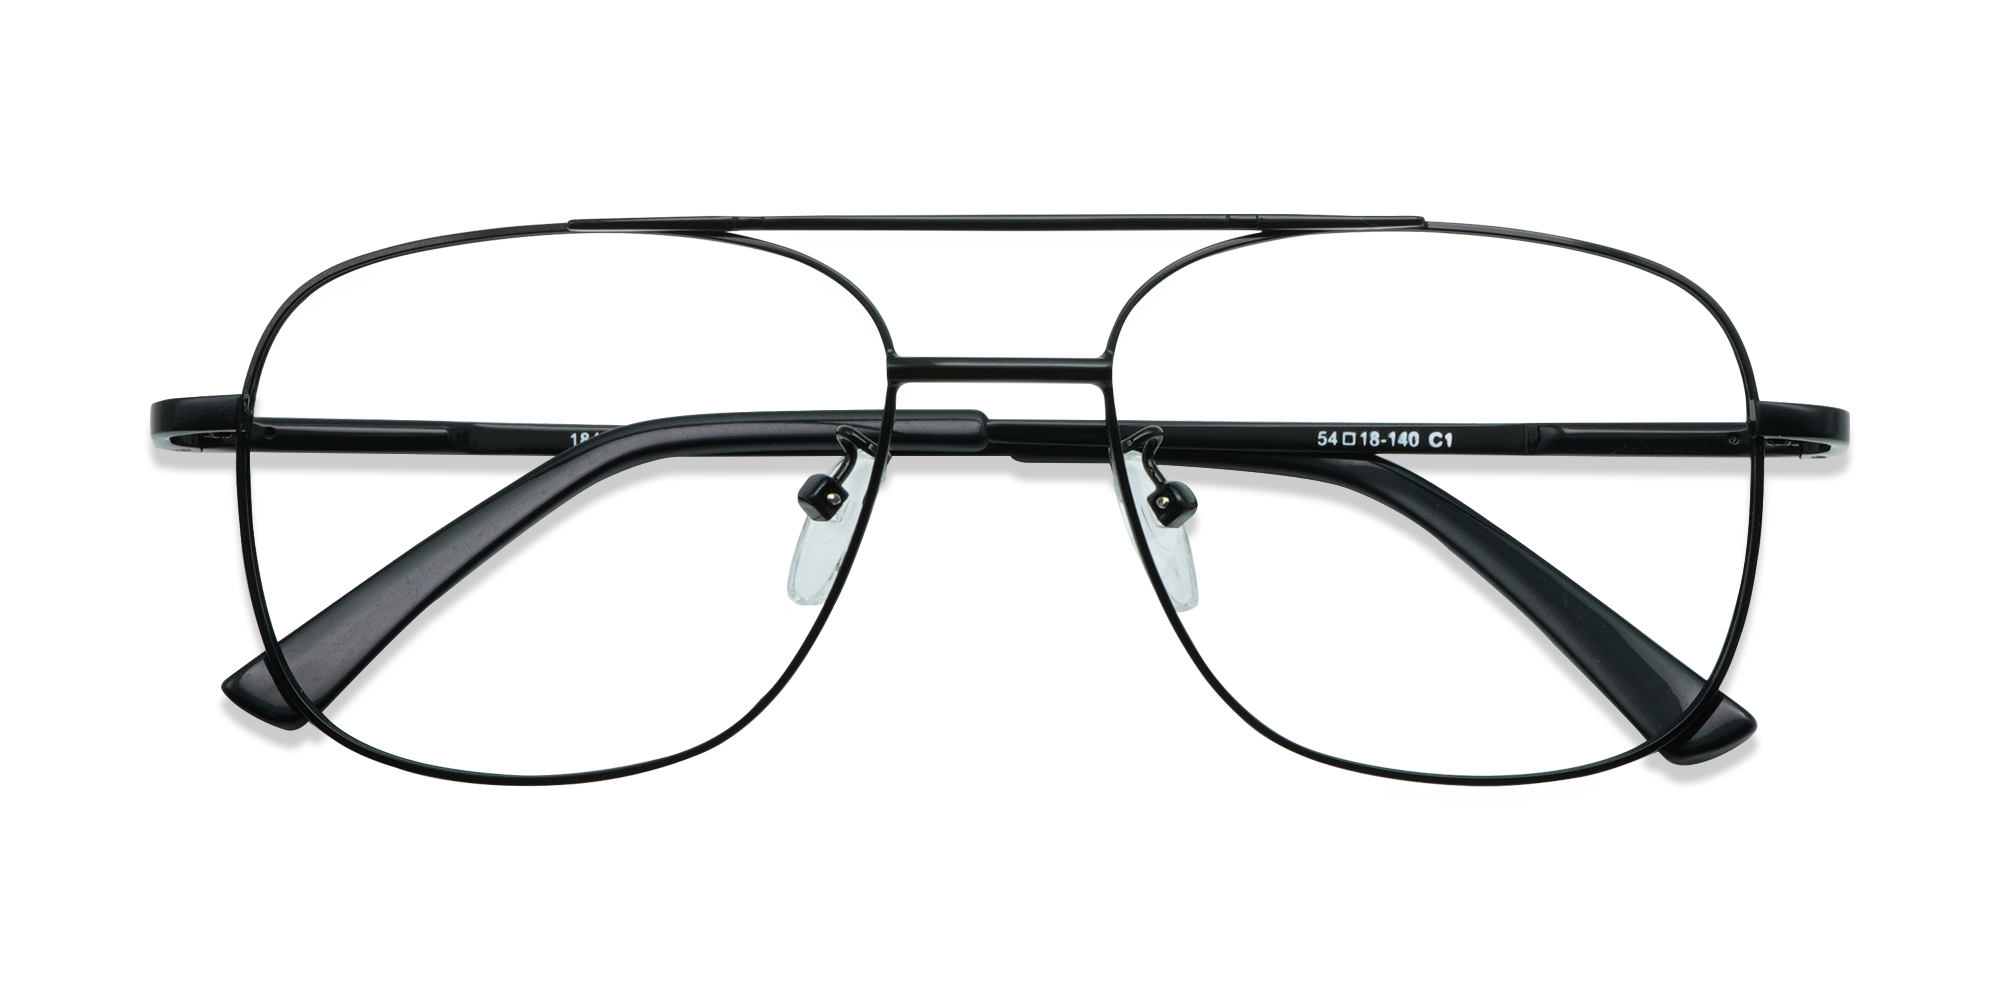 Cortland Eyeglasses Black